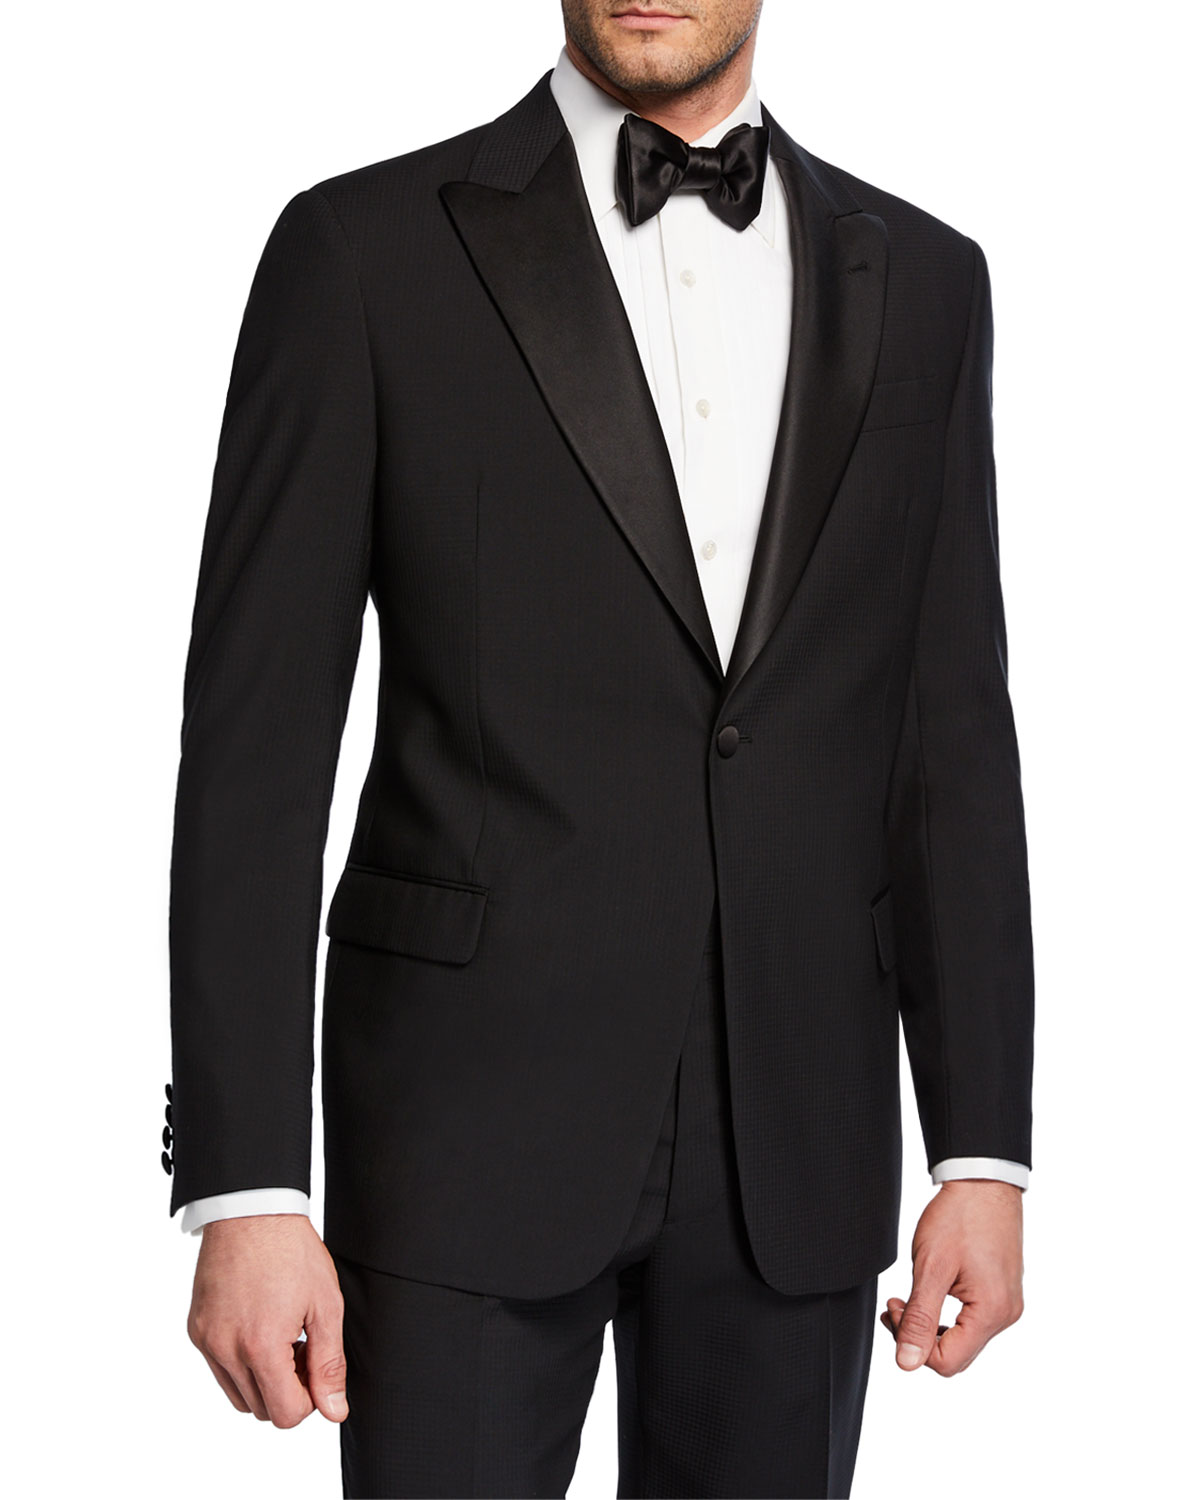 Emporio Armani Men's Tonal Geometric Two-Piece Tuxedo Suit